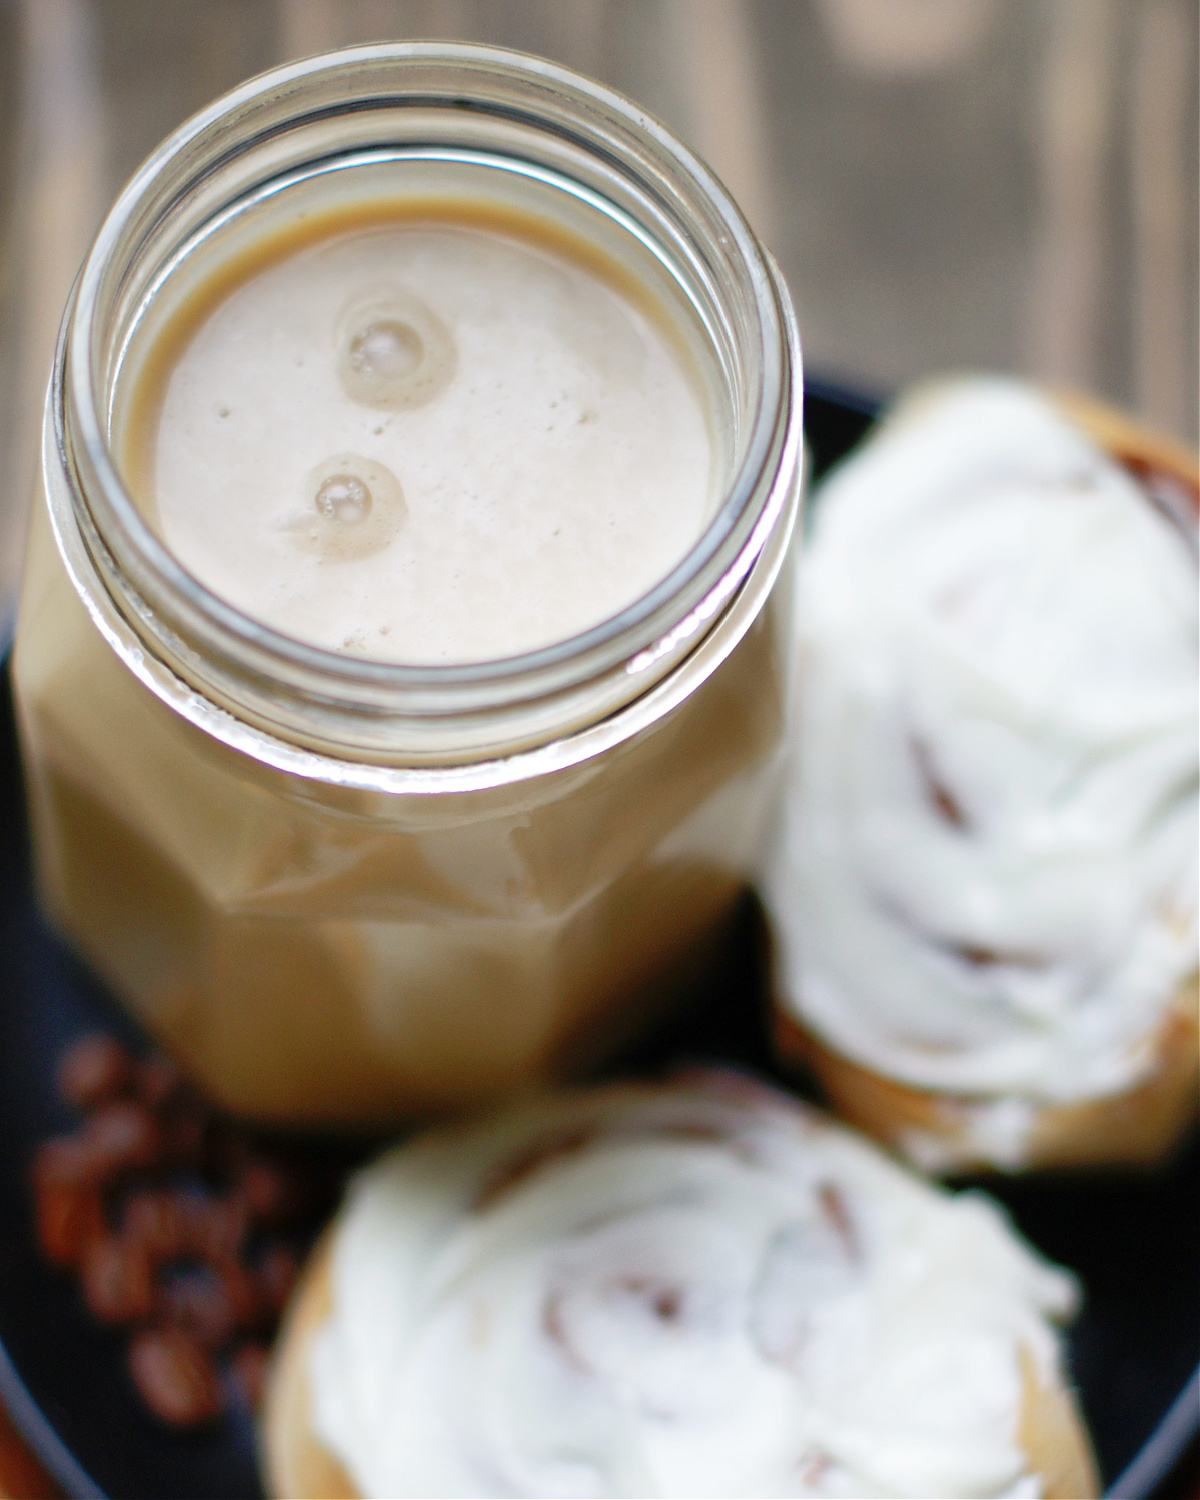 A look into the top of the cinnamon roll coffee creamer jar to see smoothness